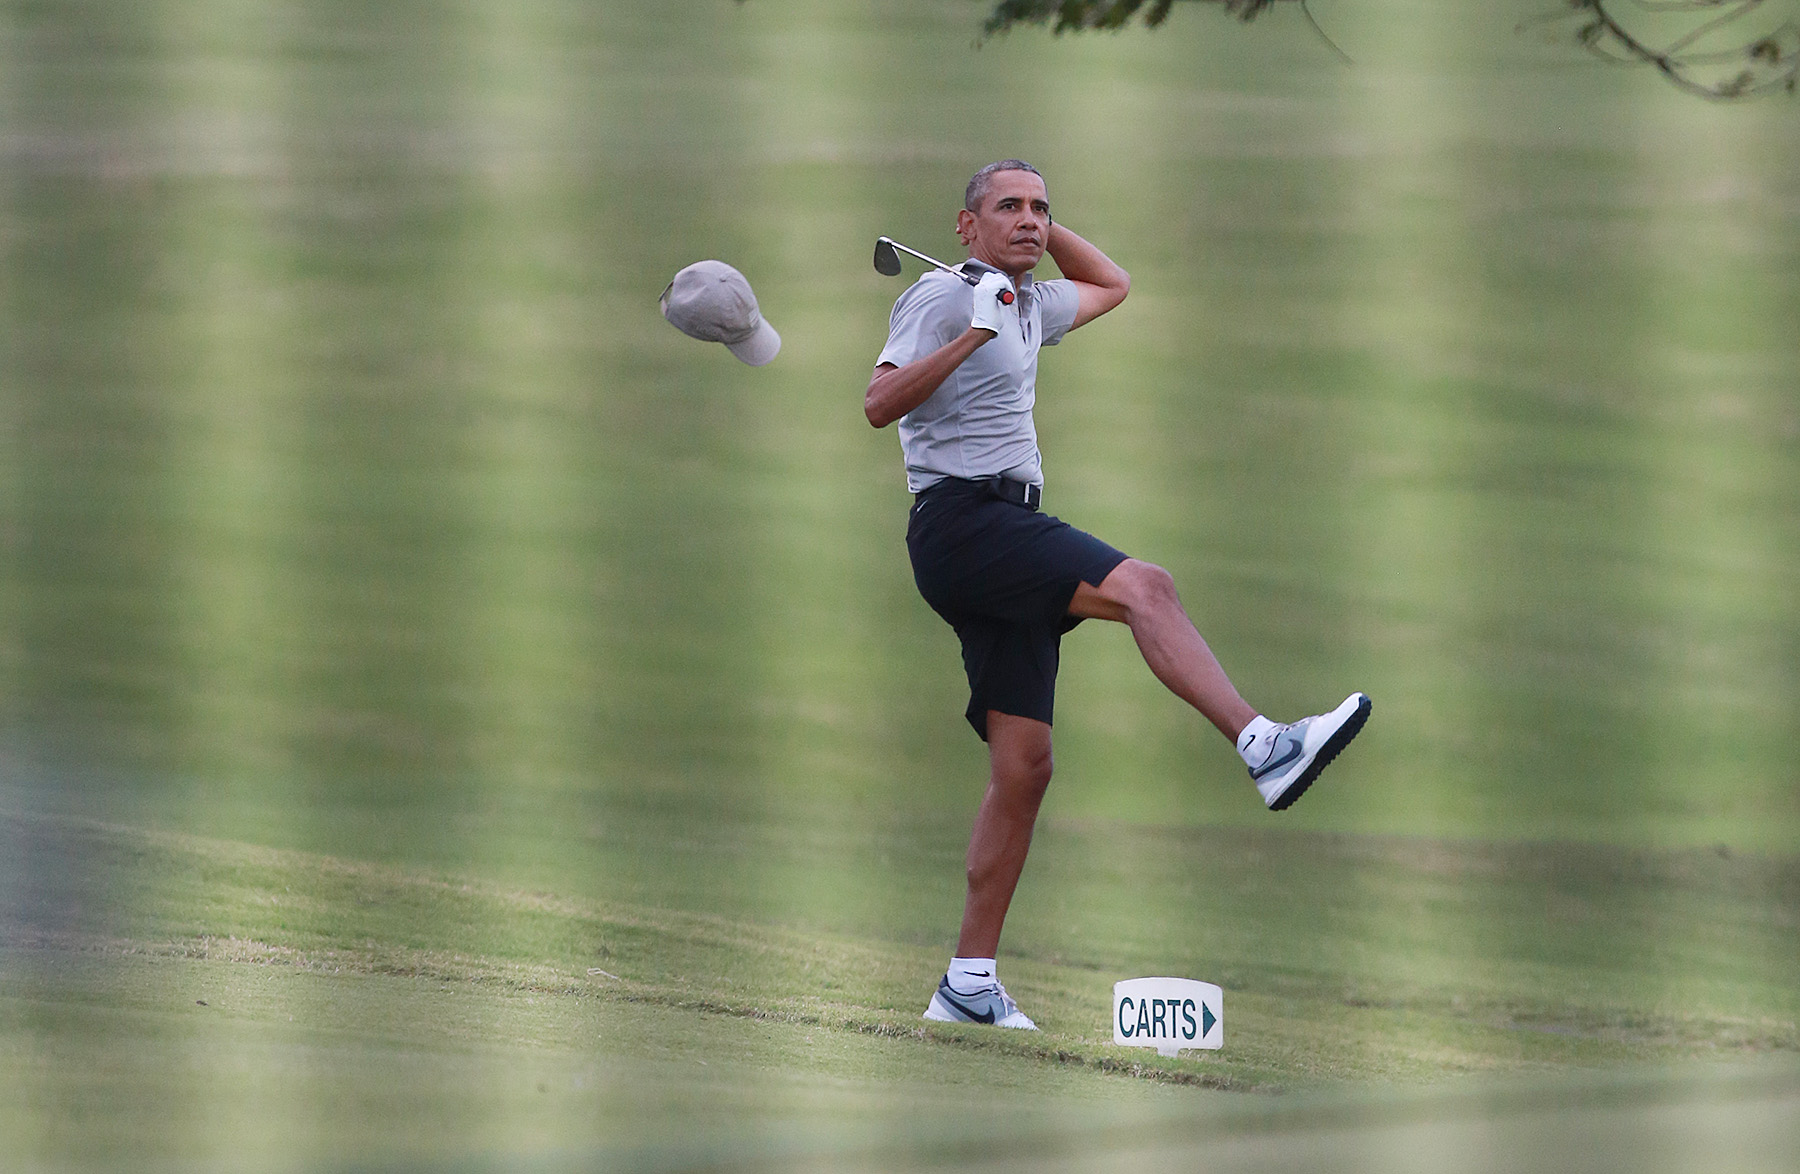 <p>In late December, the Obamas are back for another Hawaiian vacation. Viewed through a fence, President Obama loses his hat to the wind at the Mid Pacific Country Club in Kailua before recovering nicely to chip in a 40-foot shot on the 18th hole.</p>